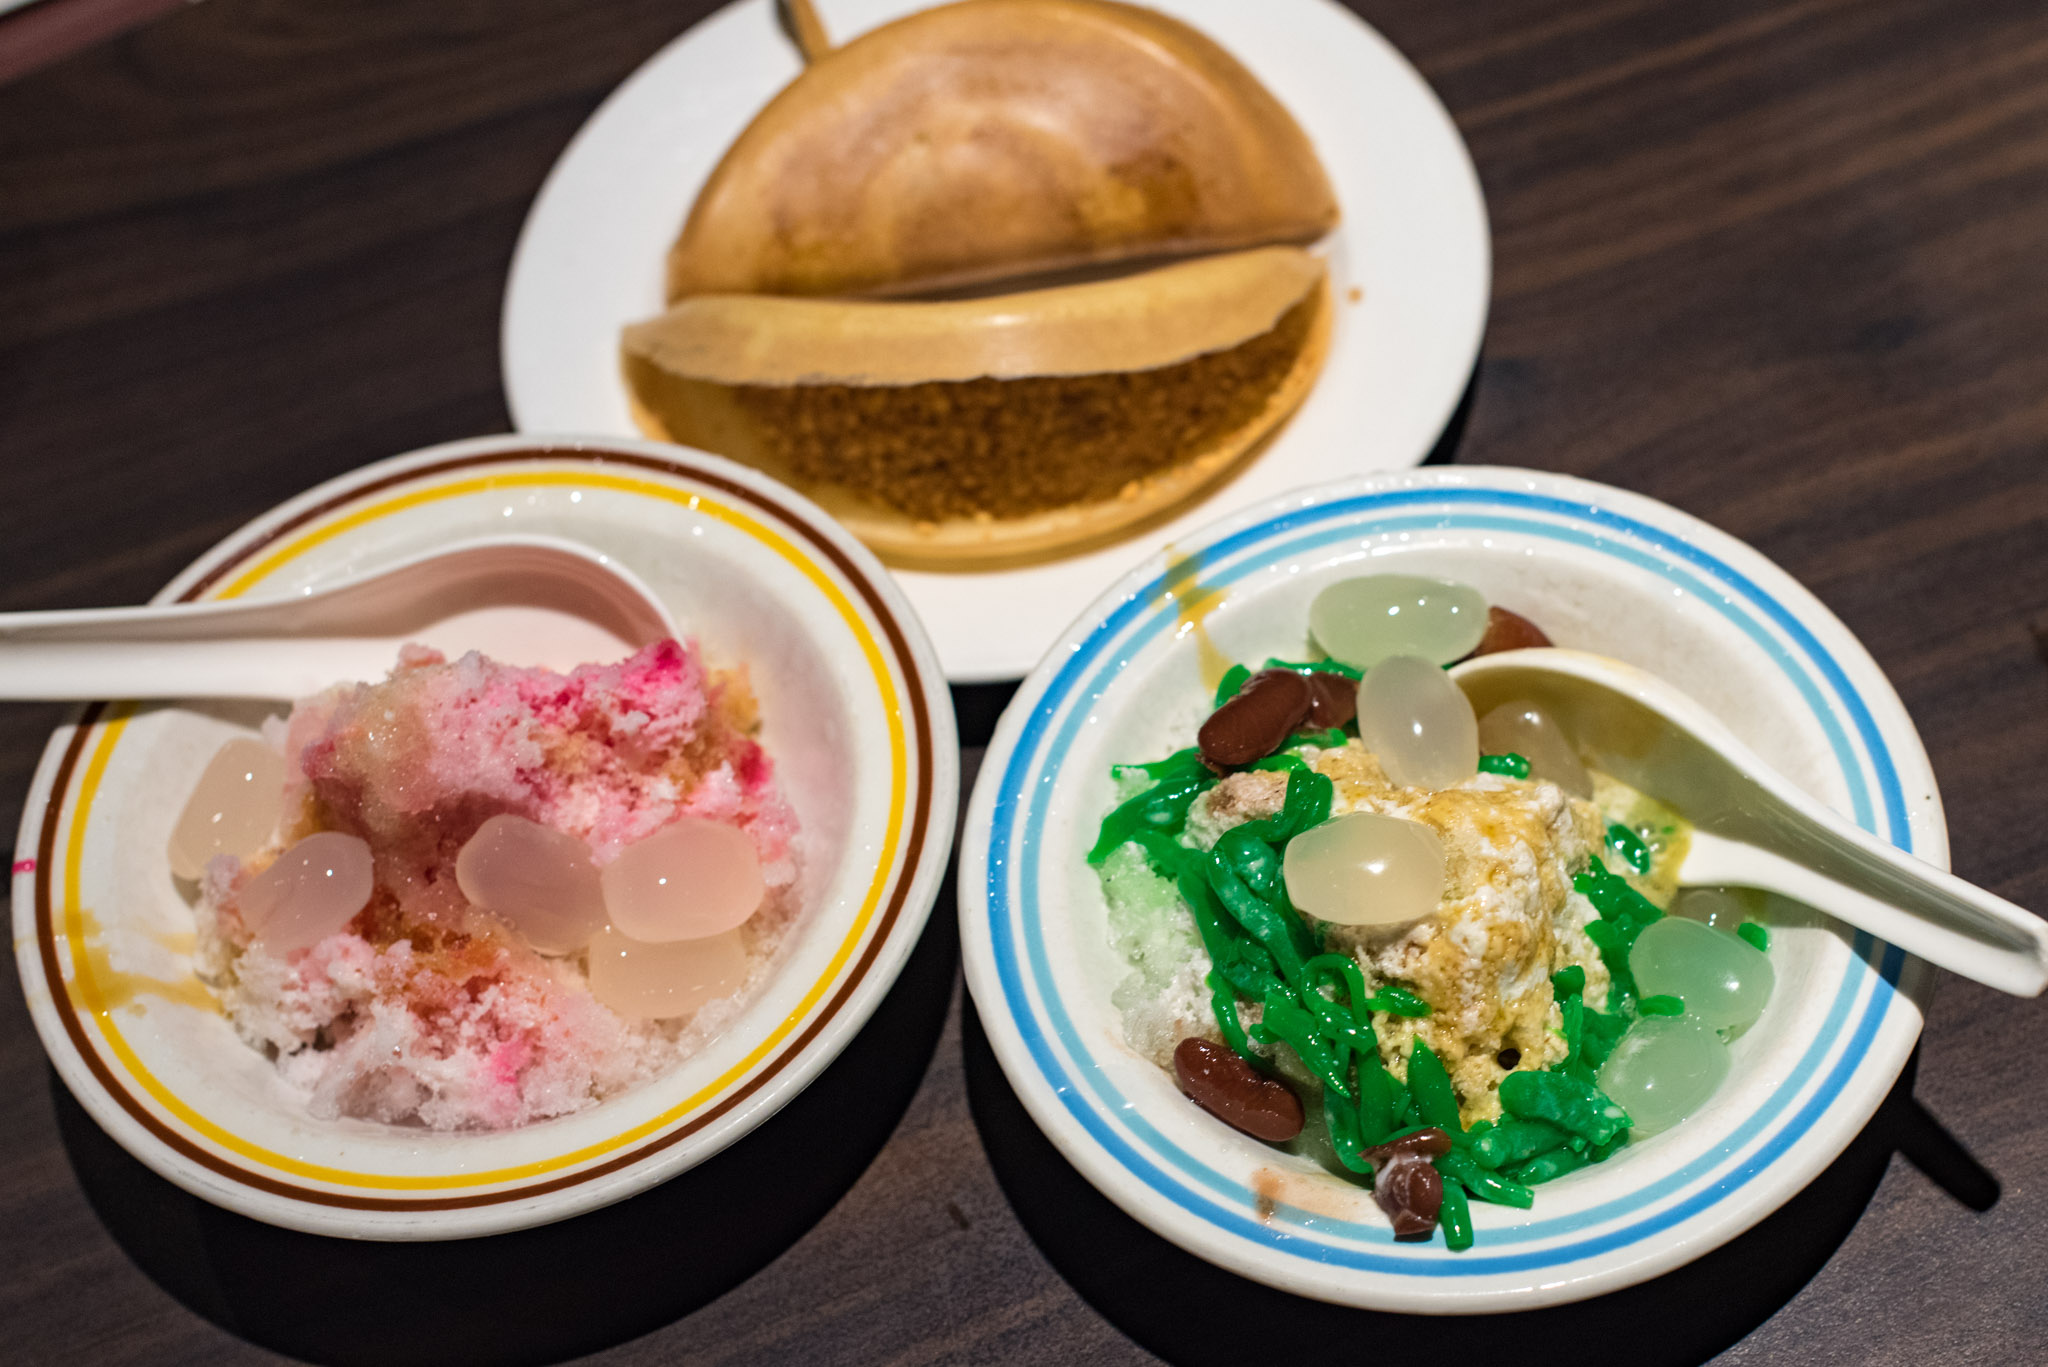 LEFT: Ice Kachang   RIGHT: Chendol Penang Hawkers' Fare - York Hotel